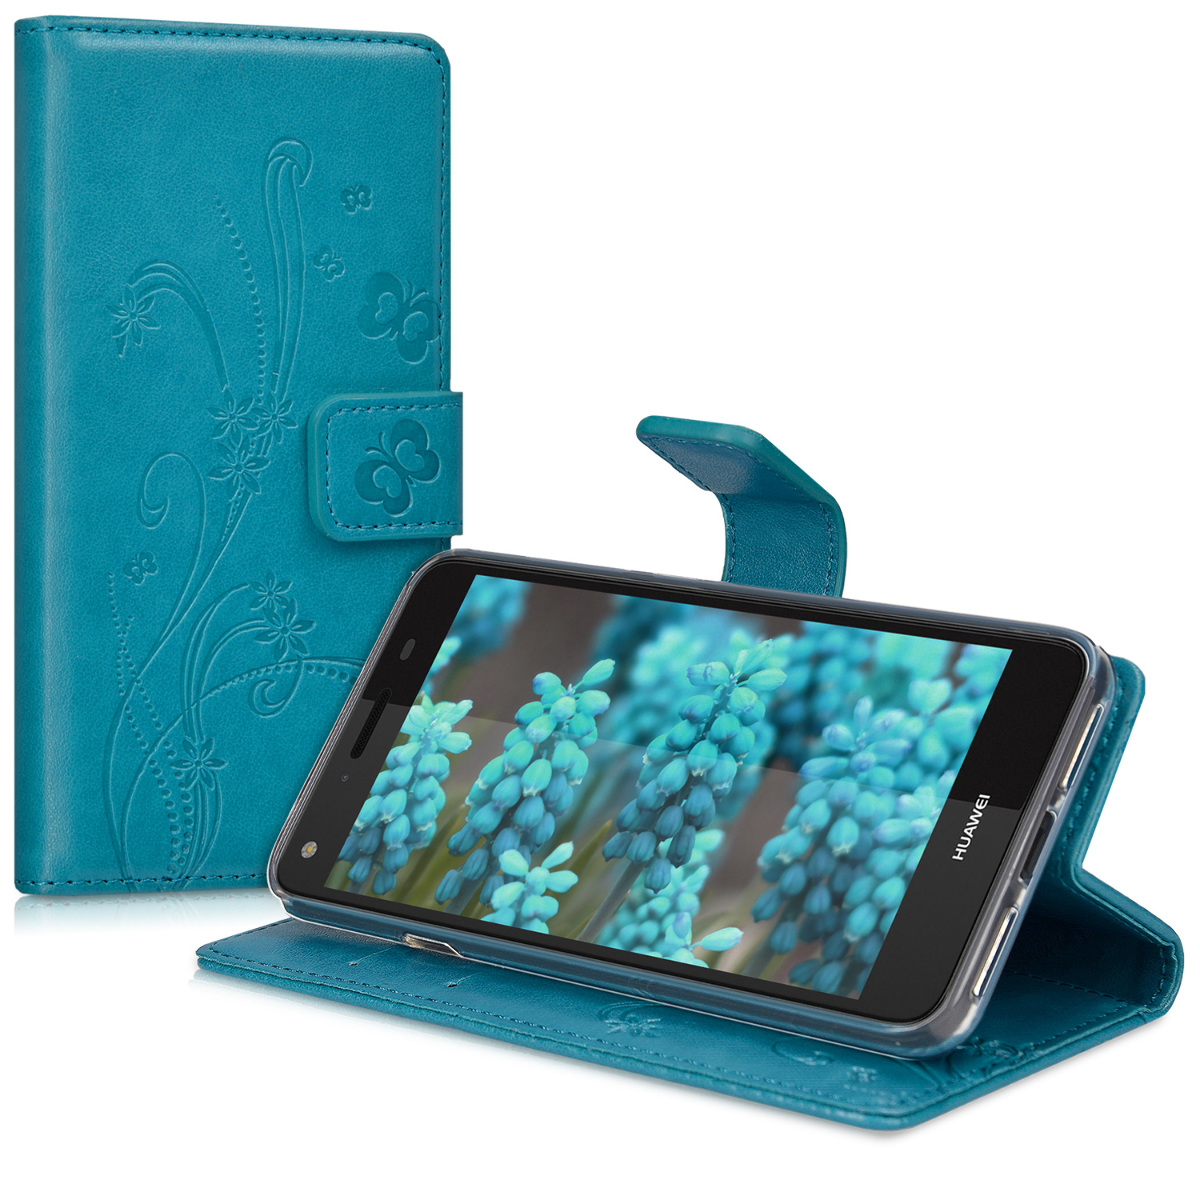 kwmobile-ETUI-EN-CUIR-SYNTHETIQUE-CHIC-POUR-HUAWEI-Y5-II-2016-SUPPORT-HOUSSE